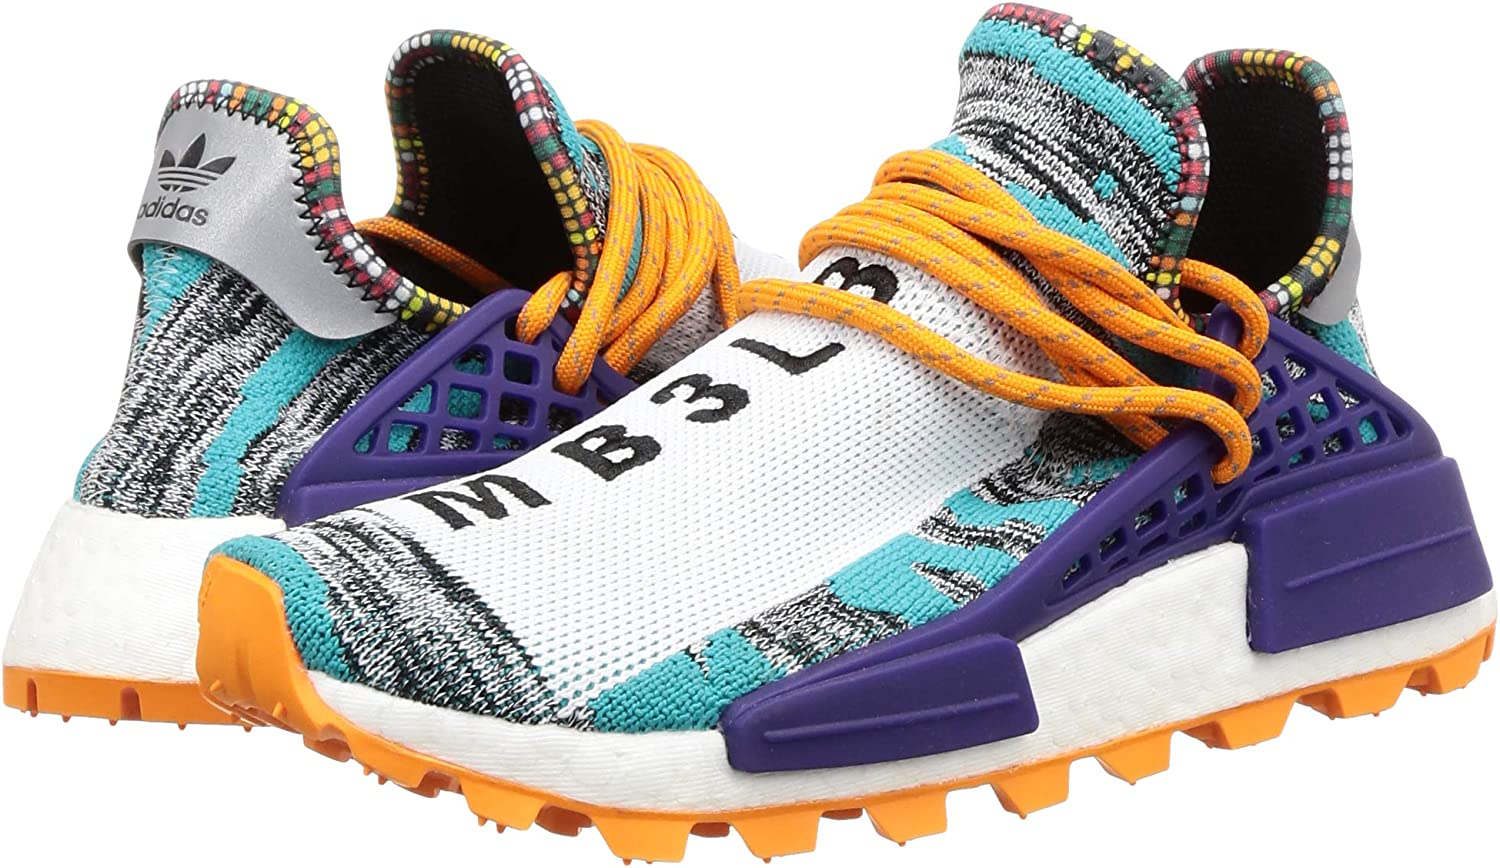 adidas NMD Human Race Trail 'Solar Pack' BB9528 Size 42